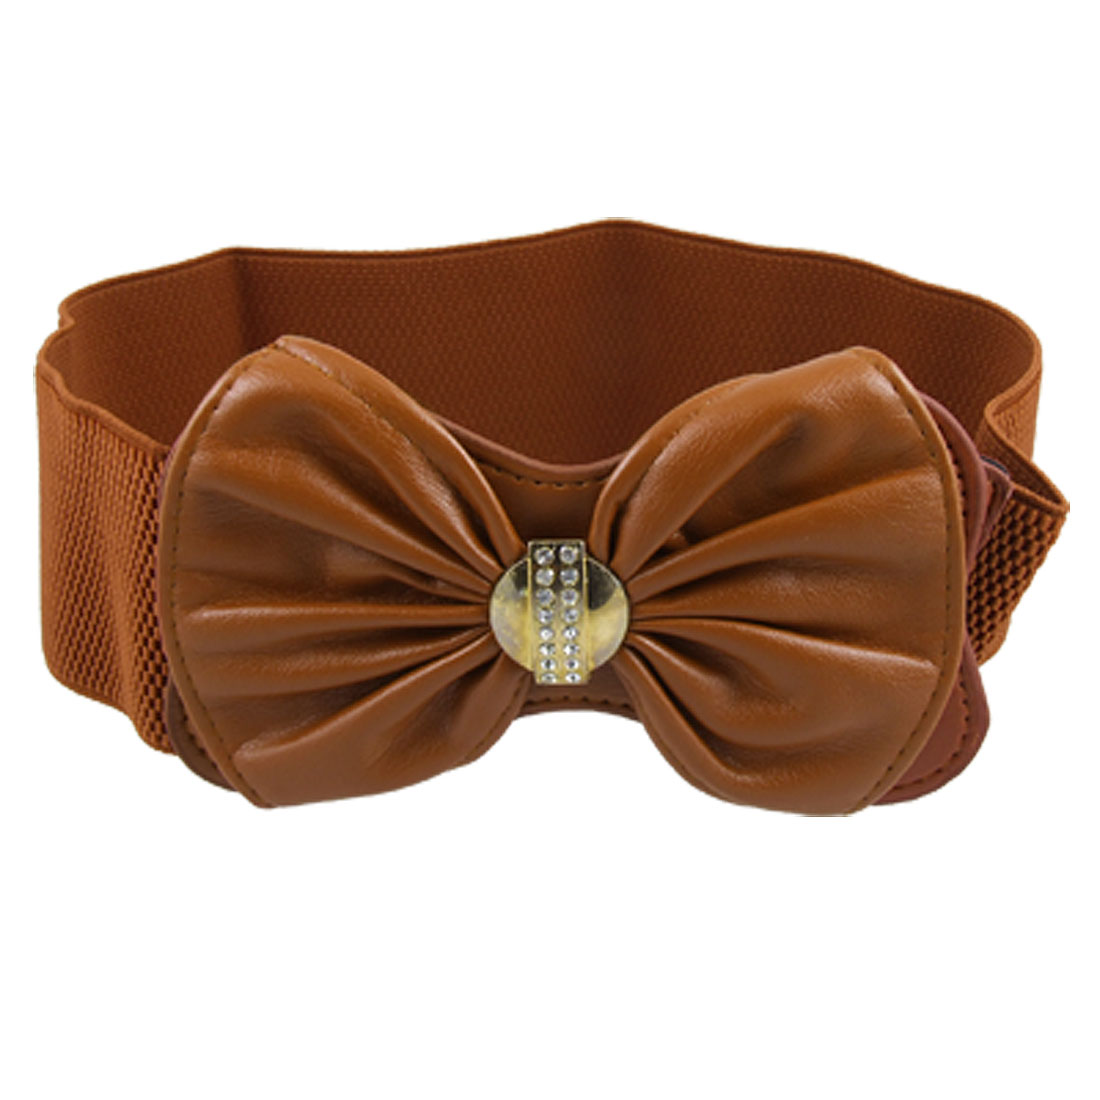 Lady Brown Faux Leather Rhinestone Decor Bowknot Buckle Stretch Waist Belt